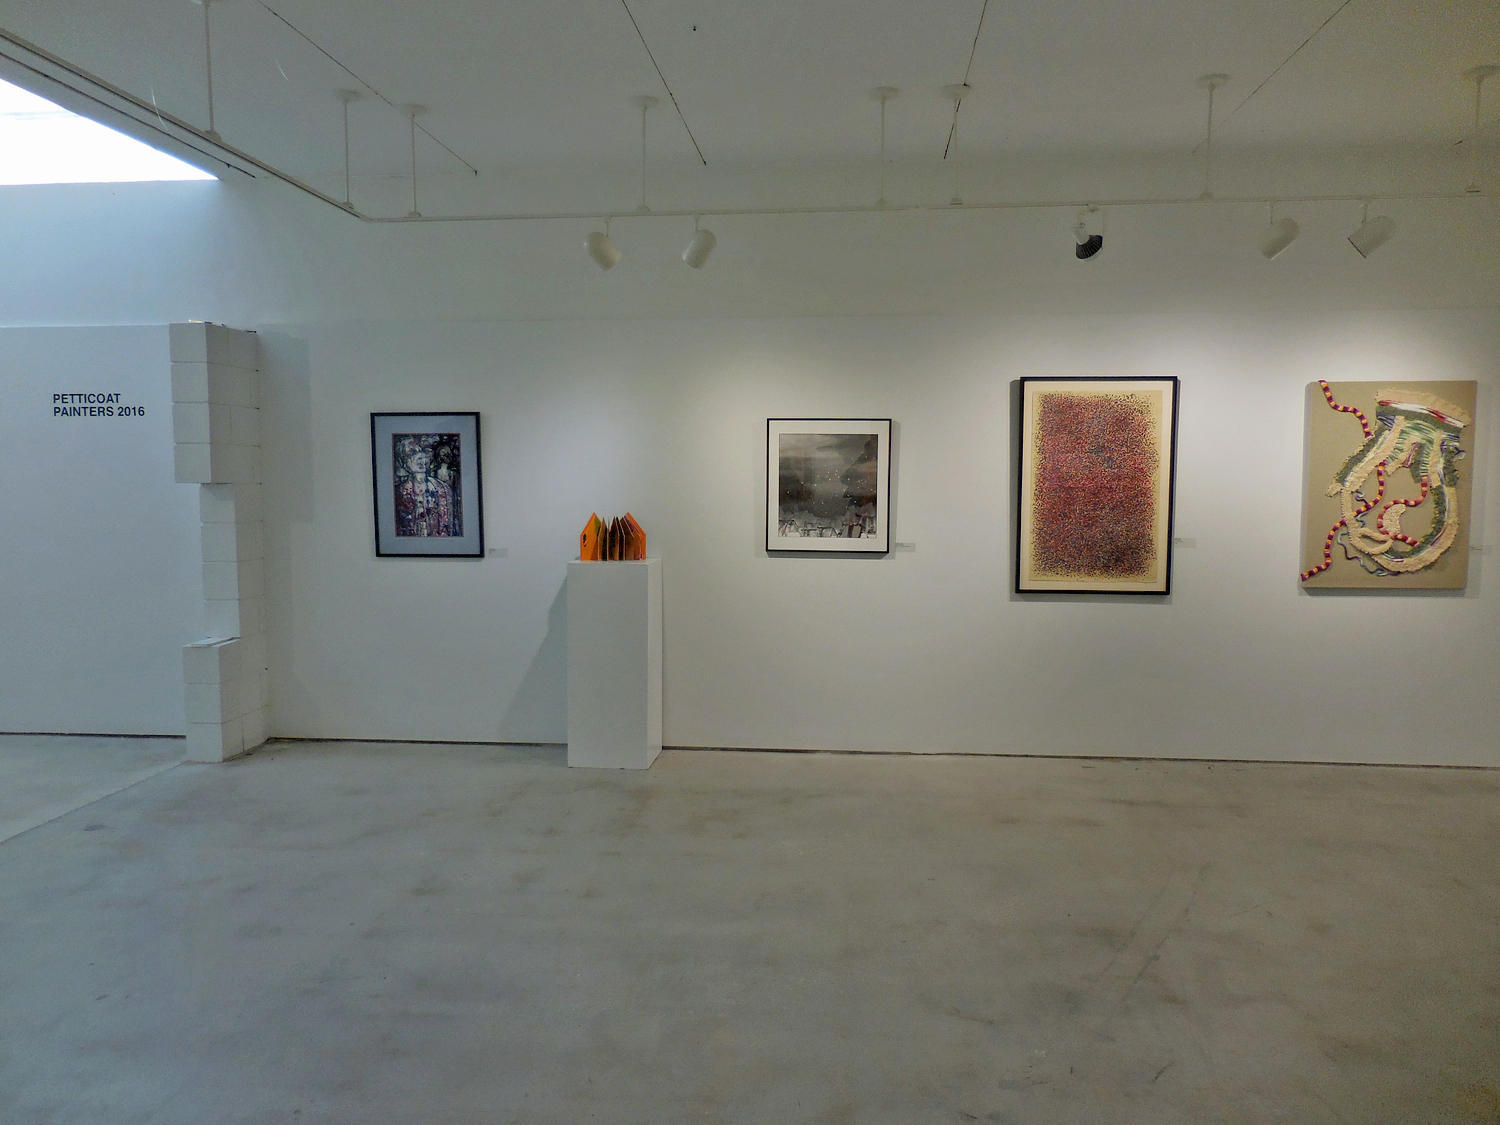 Petticoat Painters Annual Exhibition 3.JPG